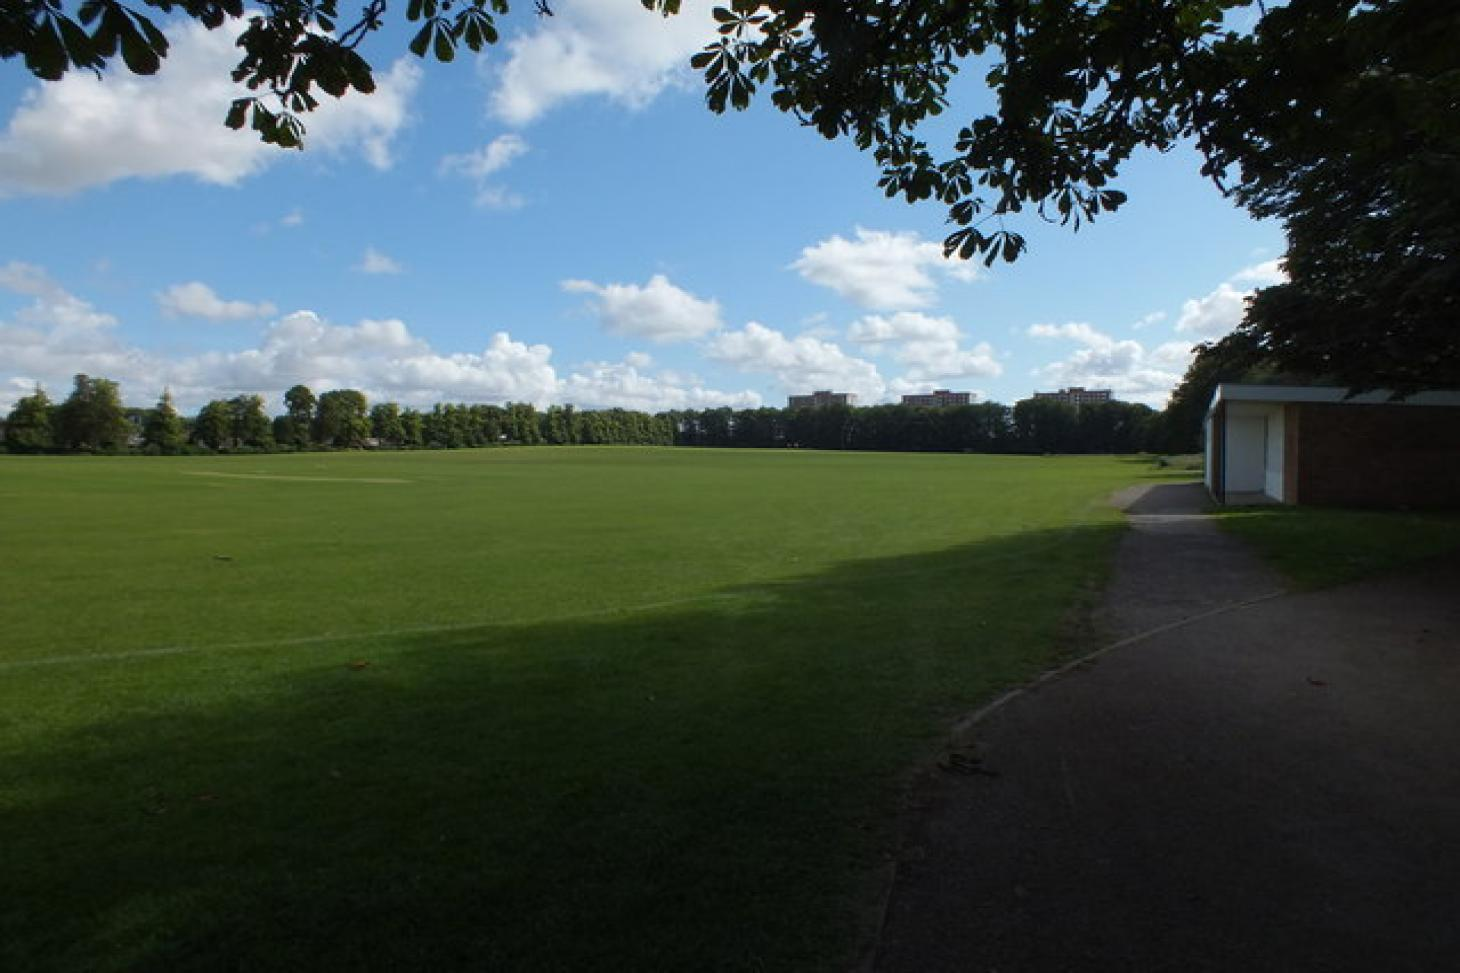 Leagrave Park Full size | Grass cricket facilities